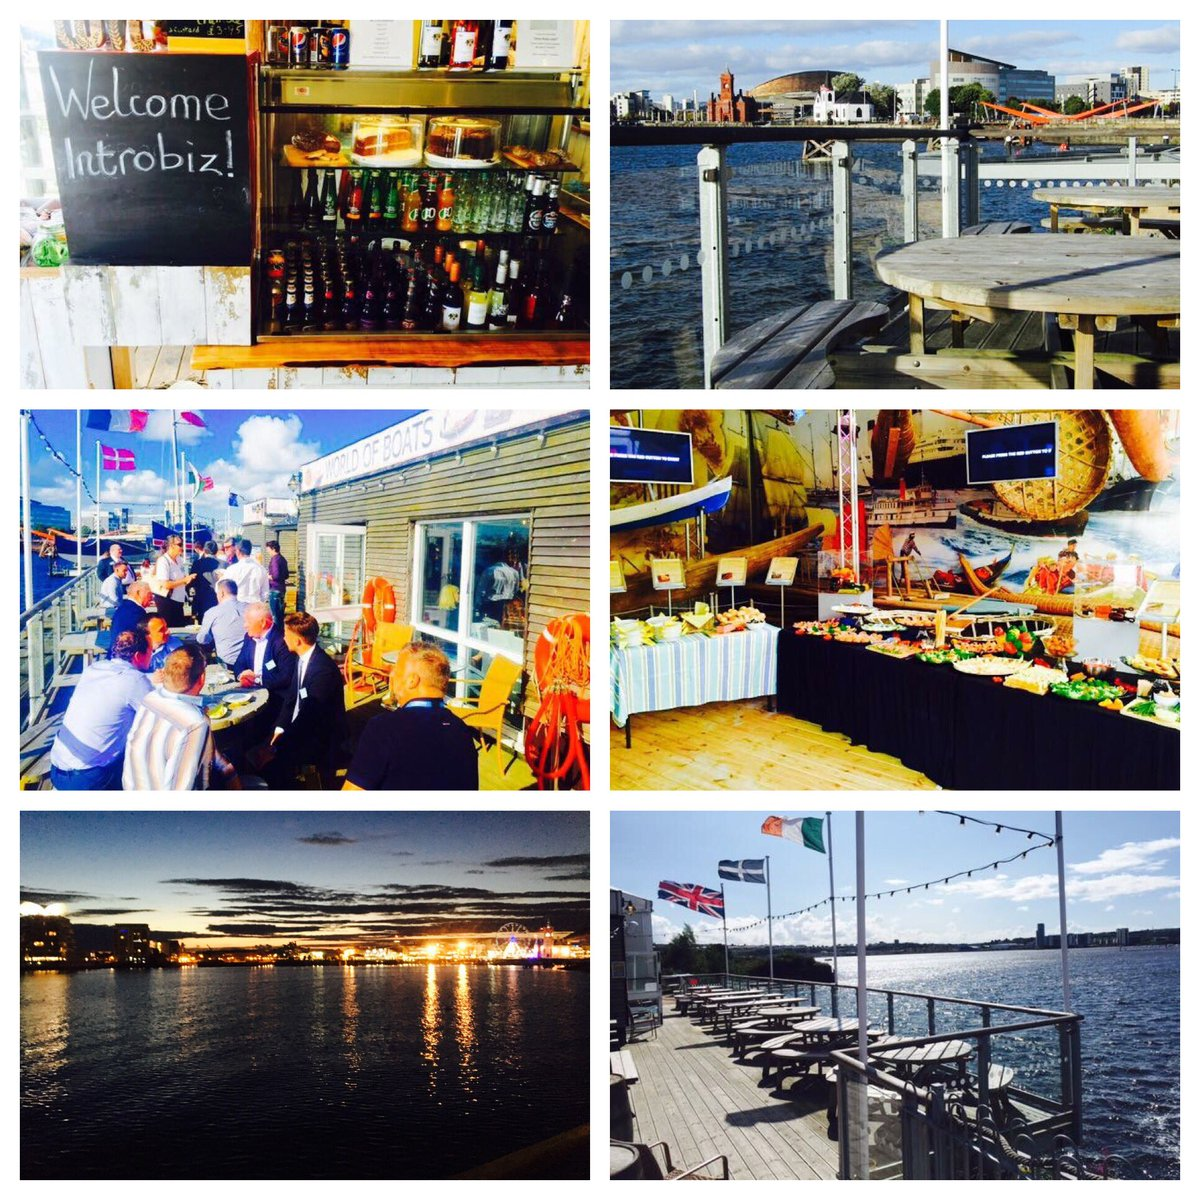 Join us #Cardiff&#39;s most fabulous views next weeks #Introbiz Social Networking Event @WorldofBoats1 Thursday 24th Aug  http://www. introbiz.co.uk/cardiff-busine ss-networking-events-wales/diary/ &nbsp; … <br>http://pic.twitter.com/WbDiNhz4K3